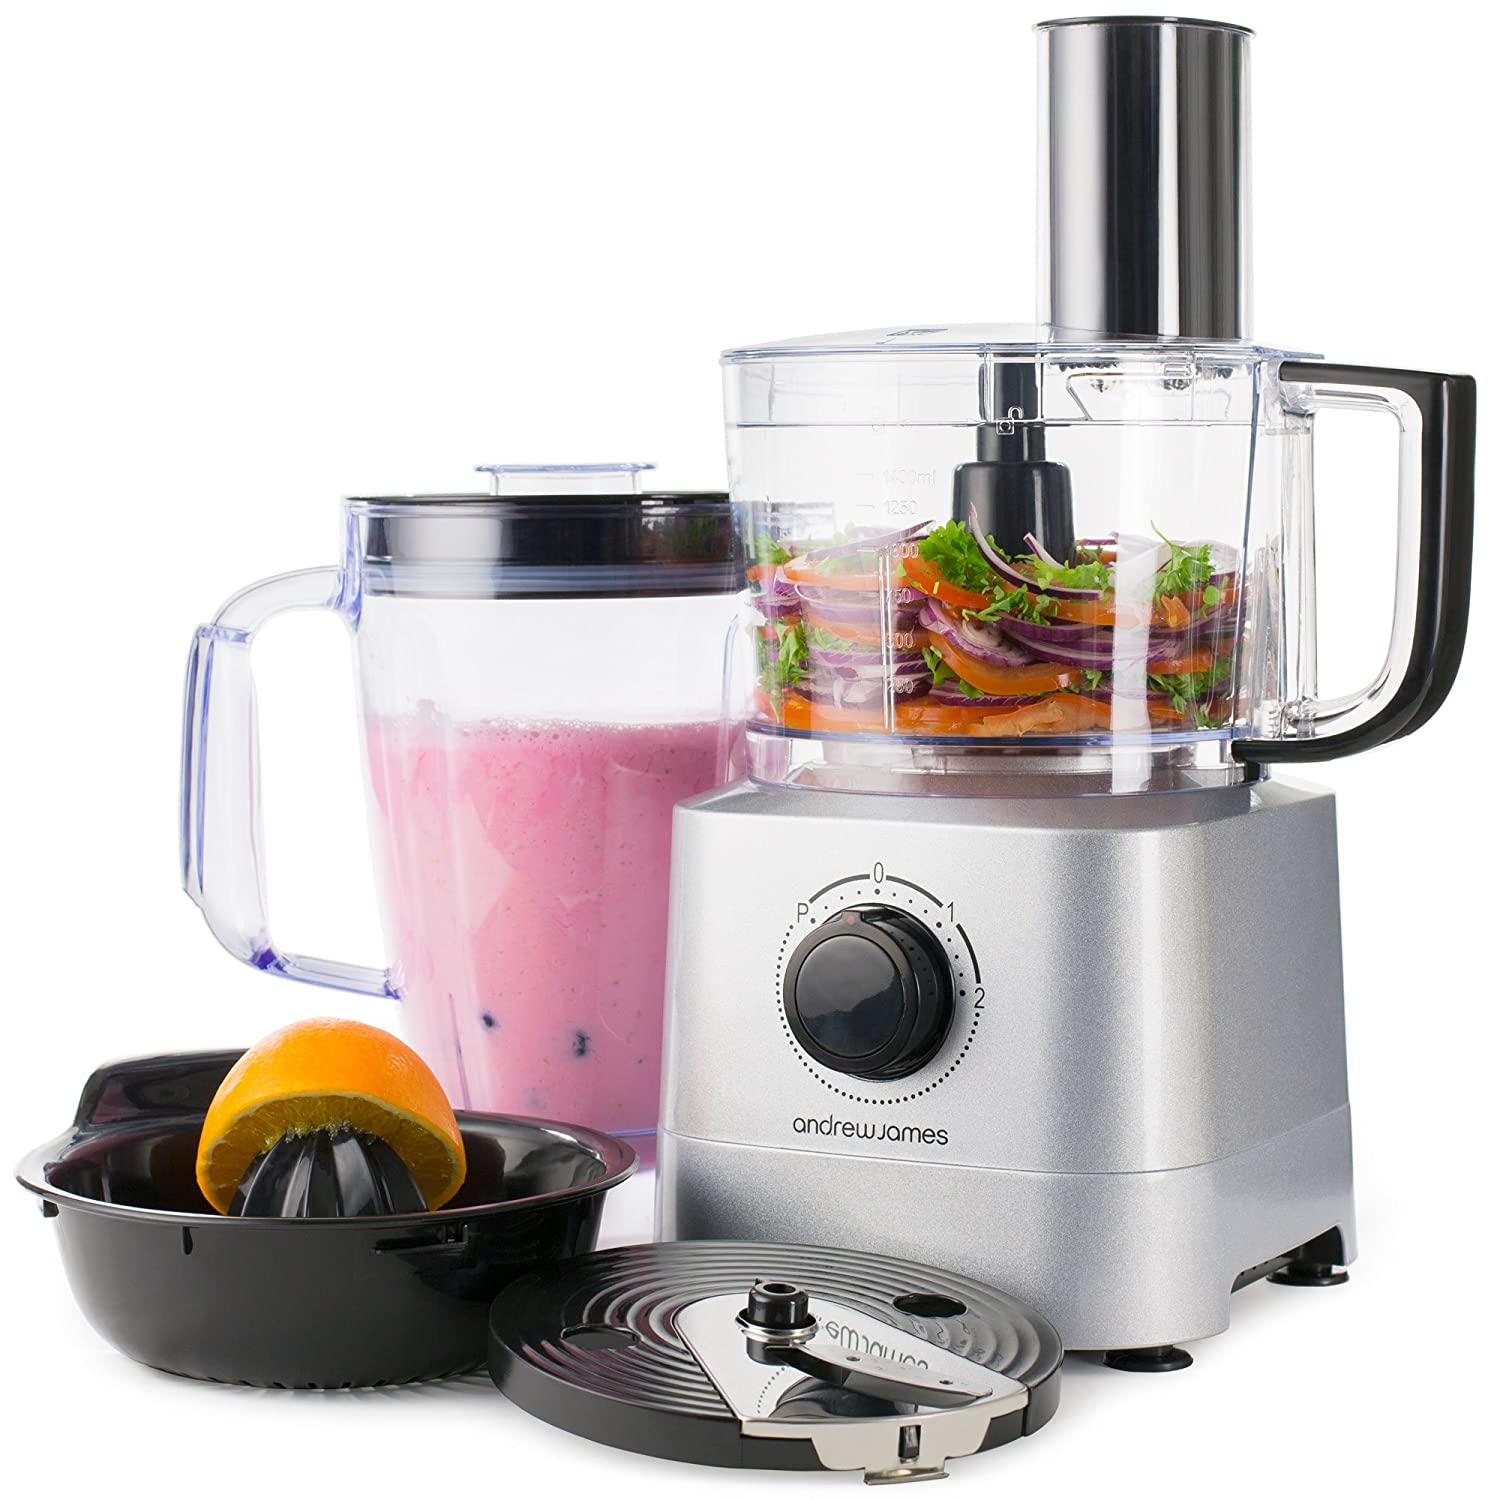 Uncategorized Andrew James Kitchen Appliances andrew james food processor in silver 700 watts 7 attachments 1 4l bowl 8l blender jug amazon co uk kitchen hom